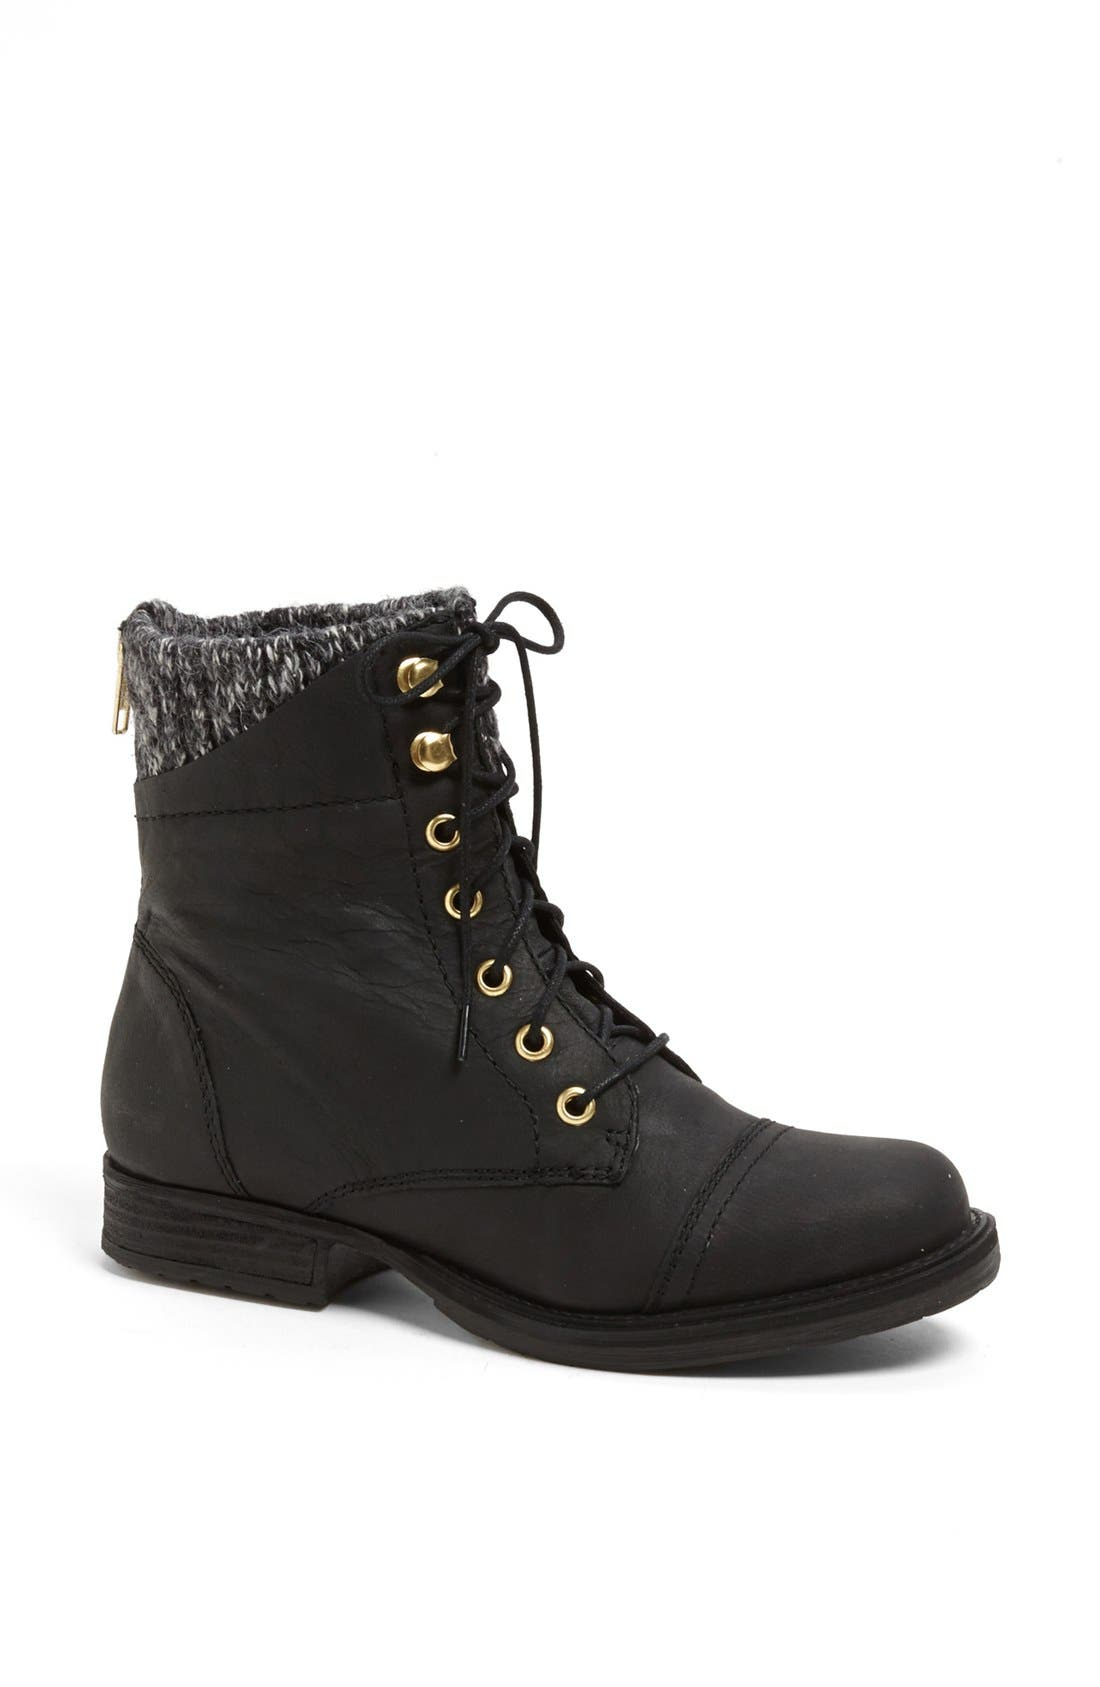 Alternate Image 1 Selected - Steve Madden 'Jacksin' Leather Boot